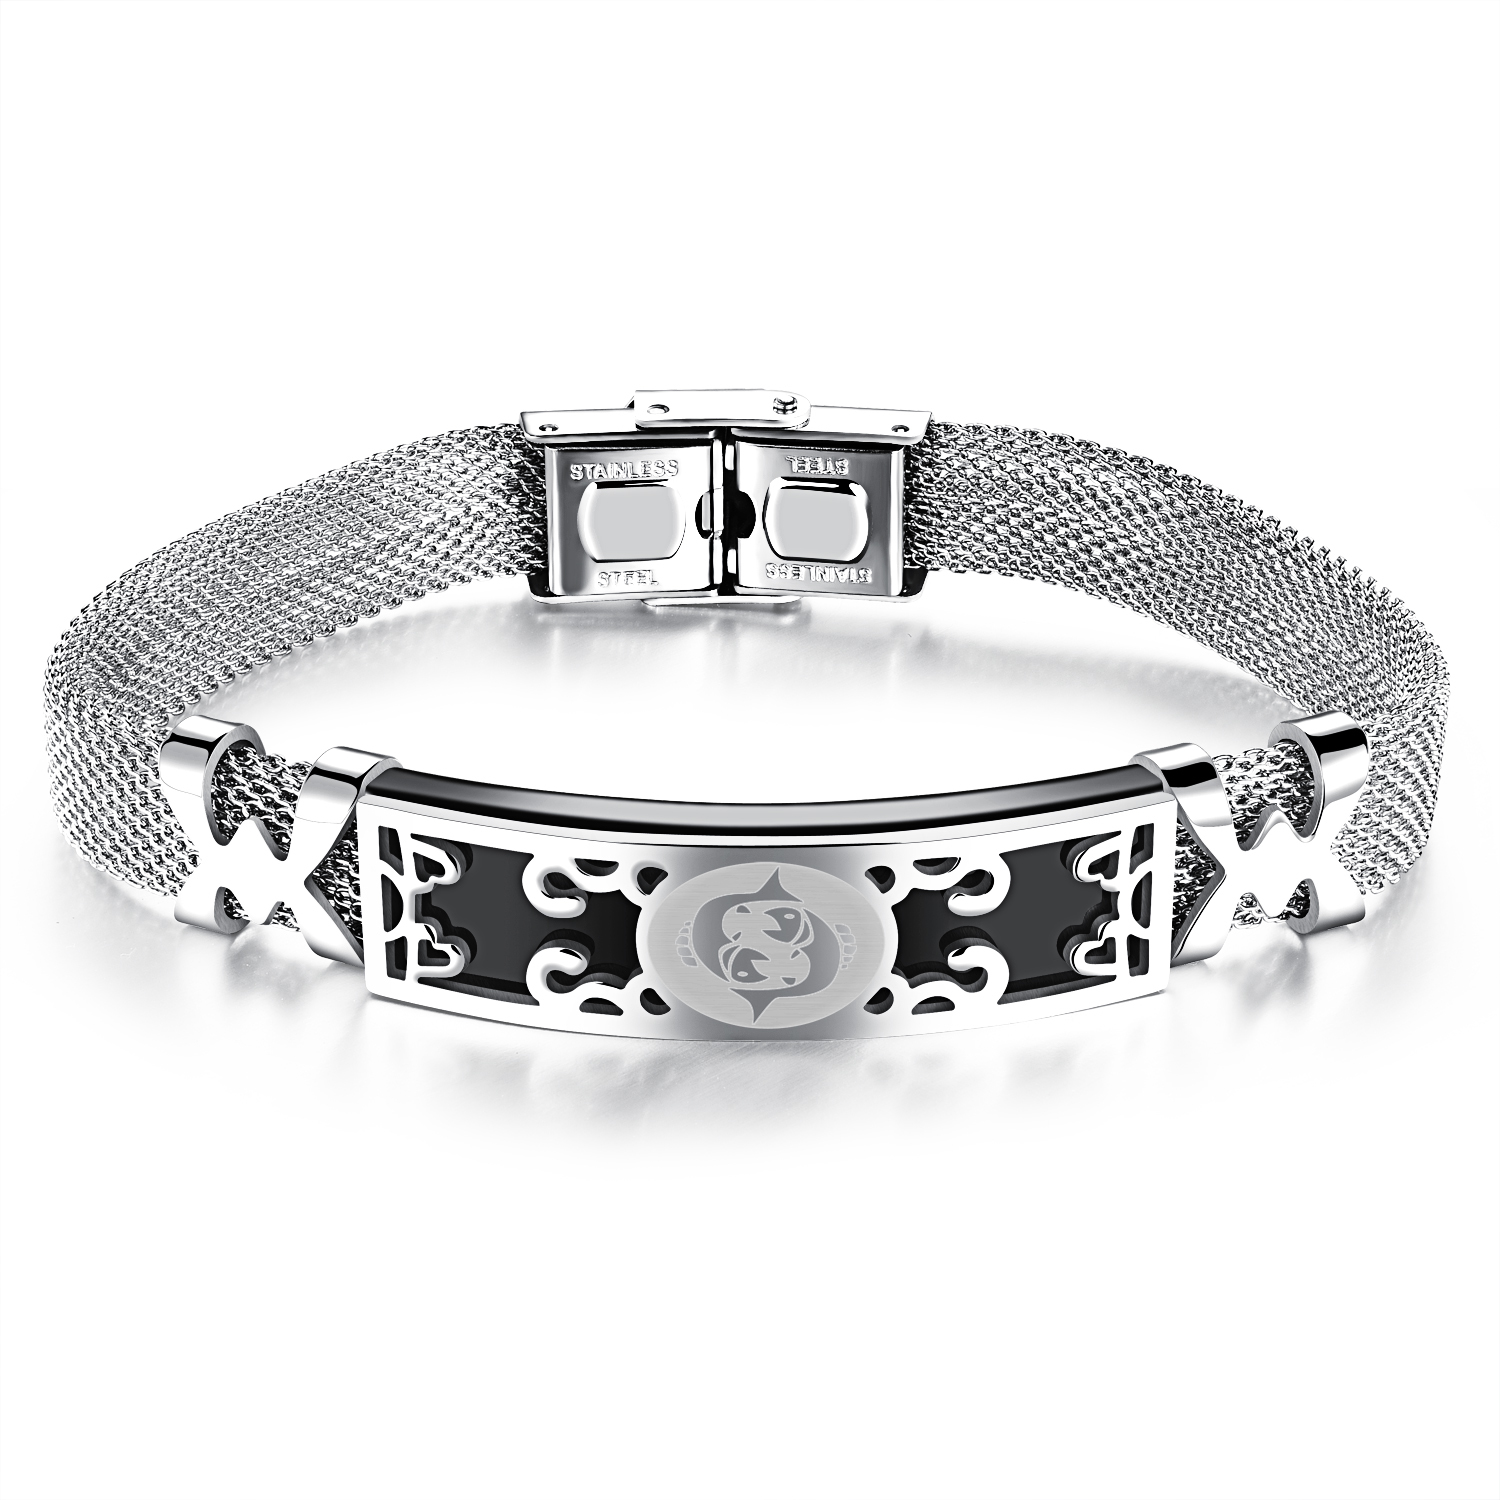 ZUNCLE Korea Constellation Hollow Men / Women Unisex Bracelet Bangles(Silver) -Pisces